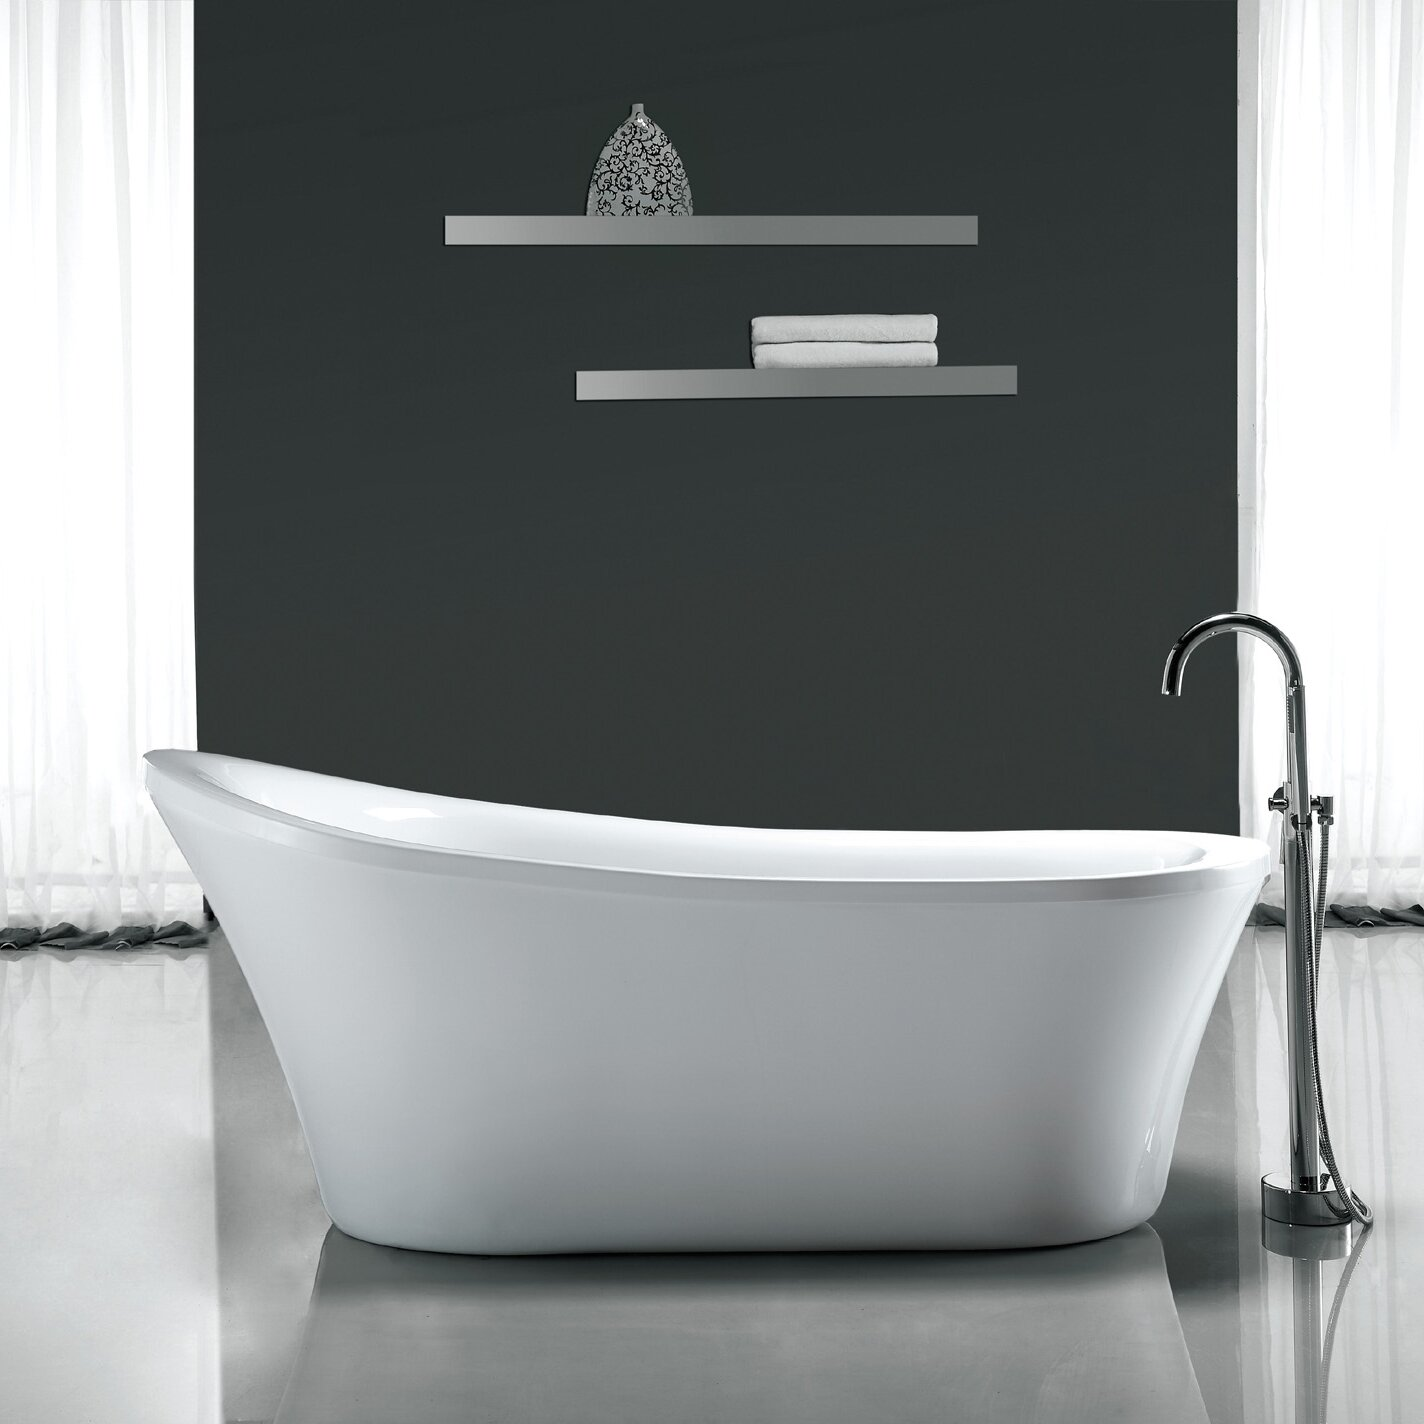 Ove decors rachel 70 x 34 freestanding acrylic slipper for What is the best bathtub